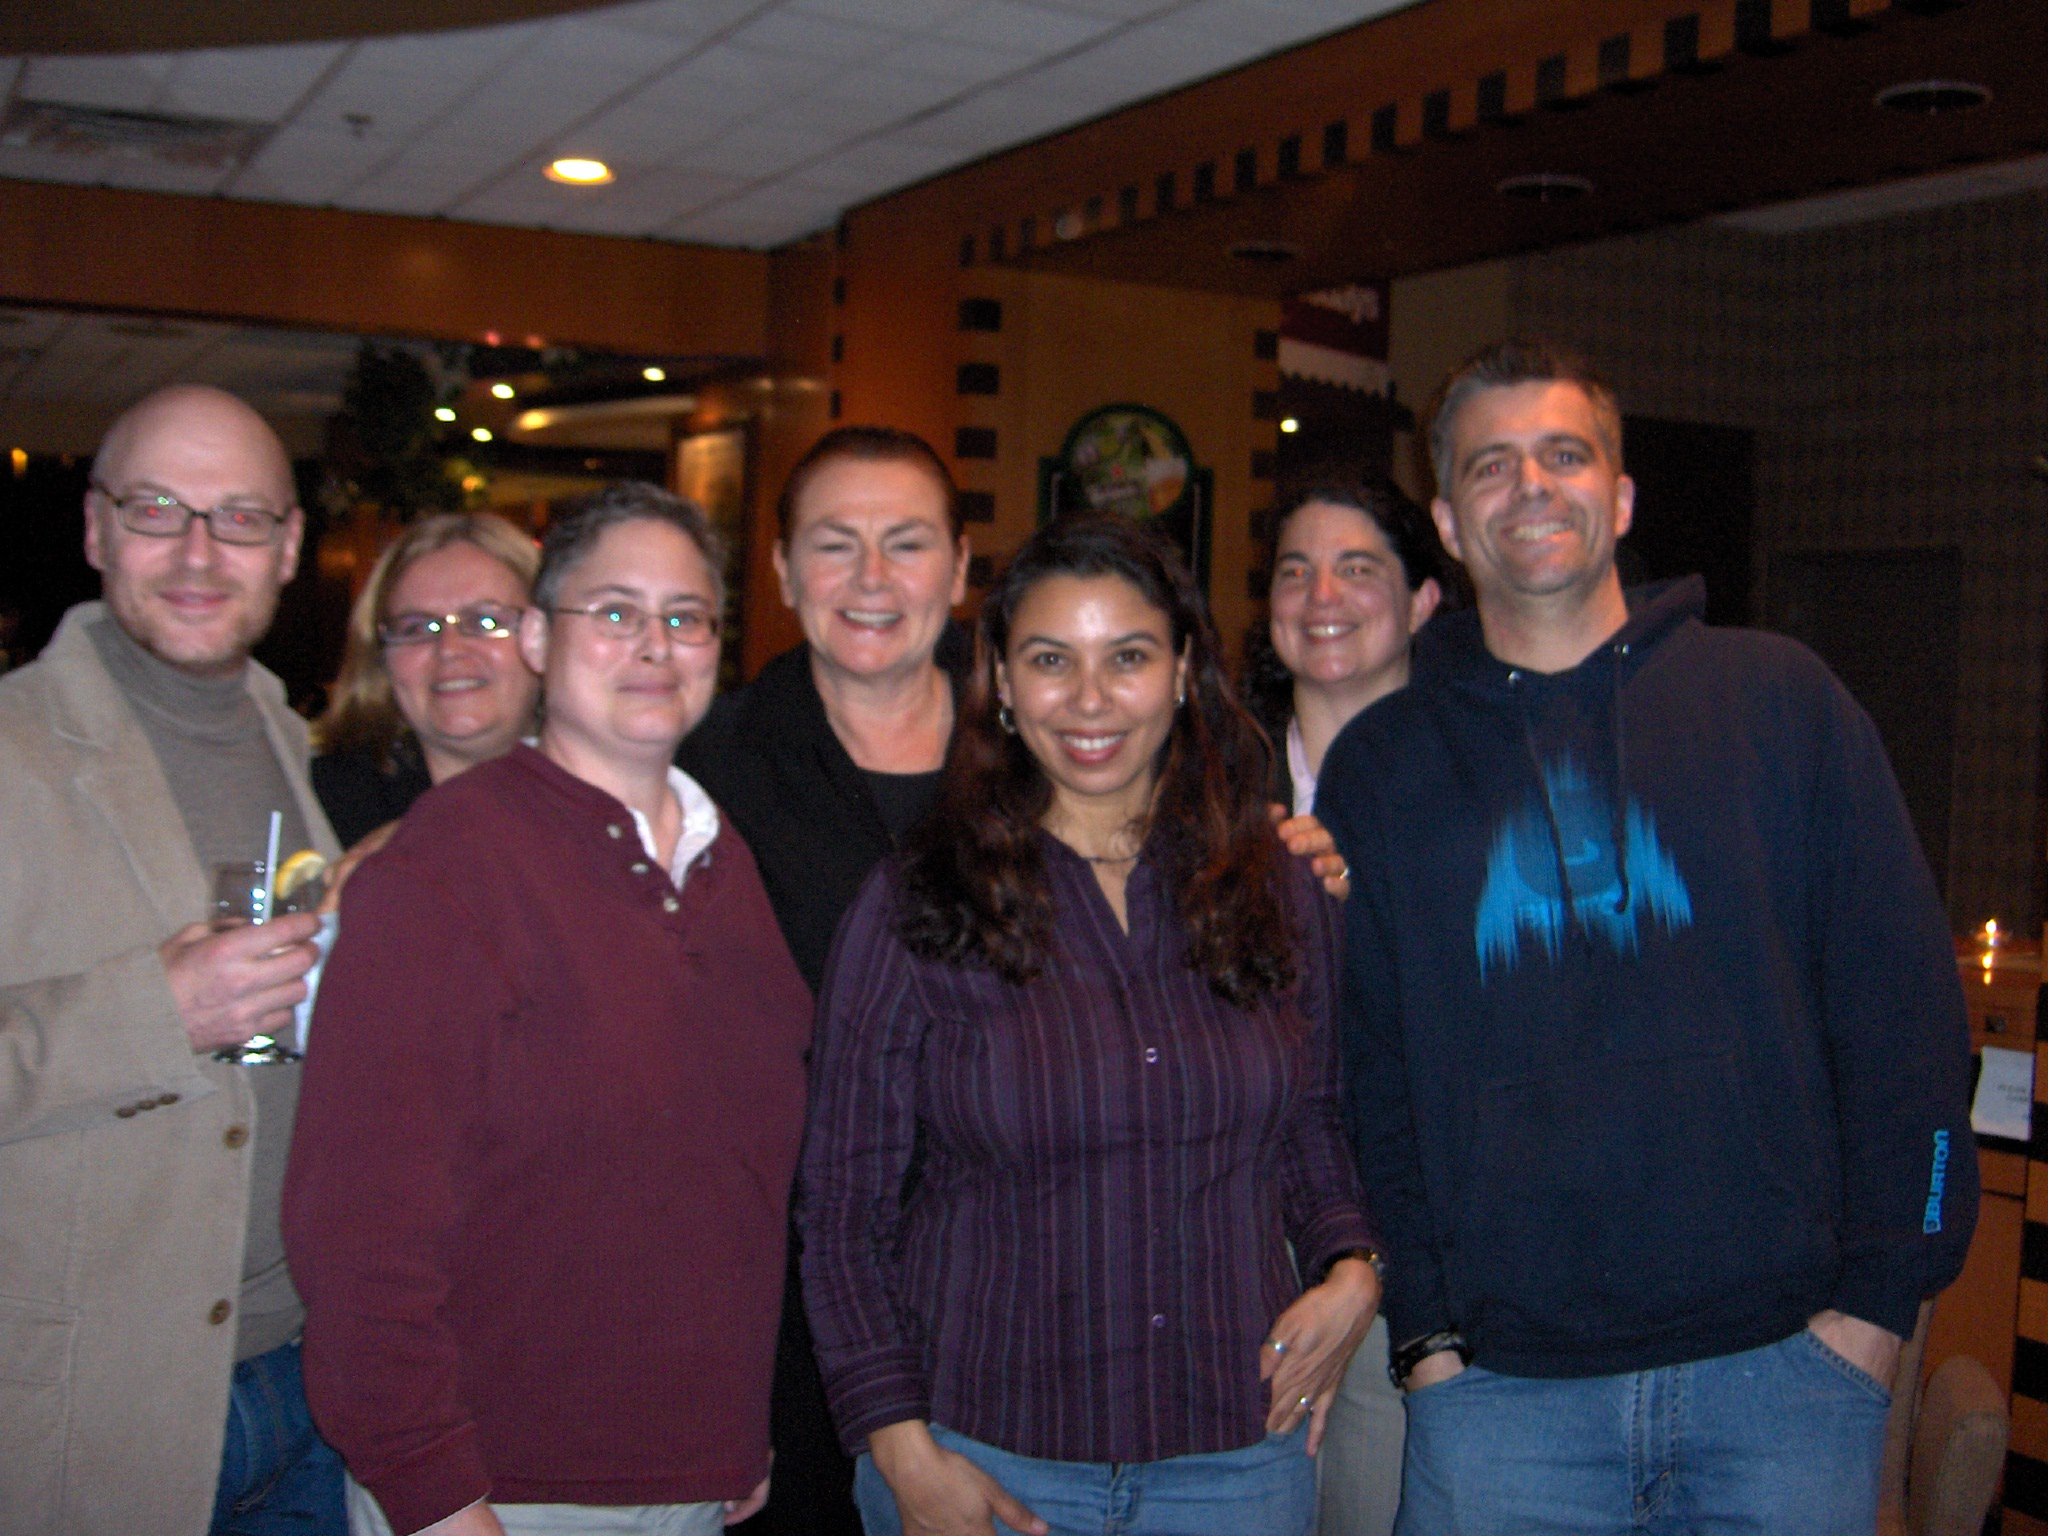 Some of our Ottawa comics with famous Canadian actor Mary Walsh who generously agreed to host one of our shows